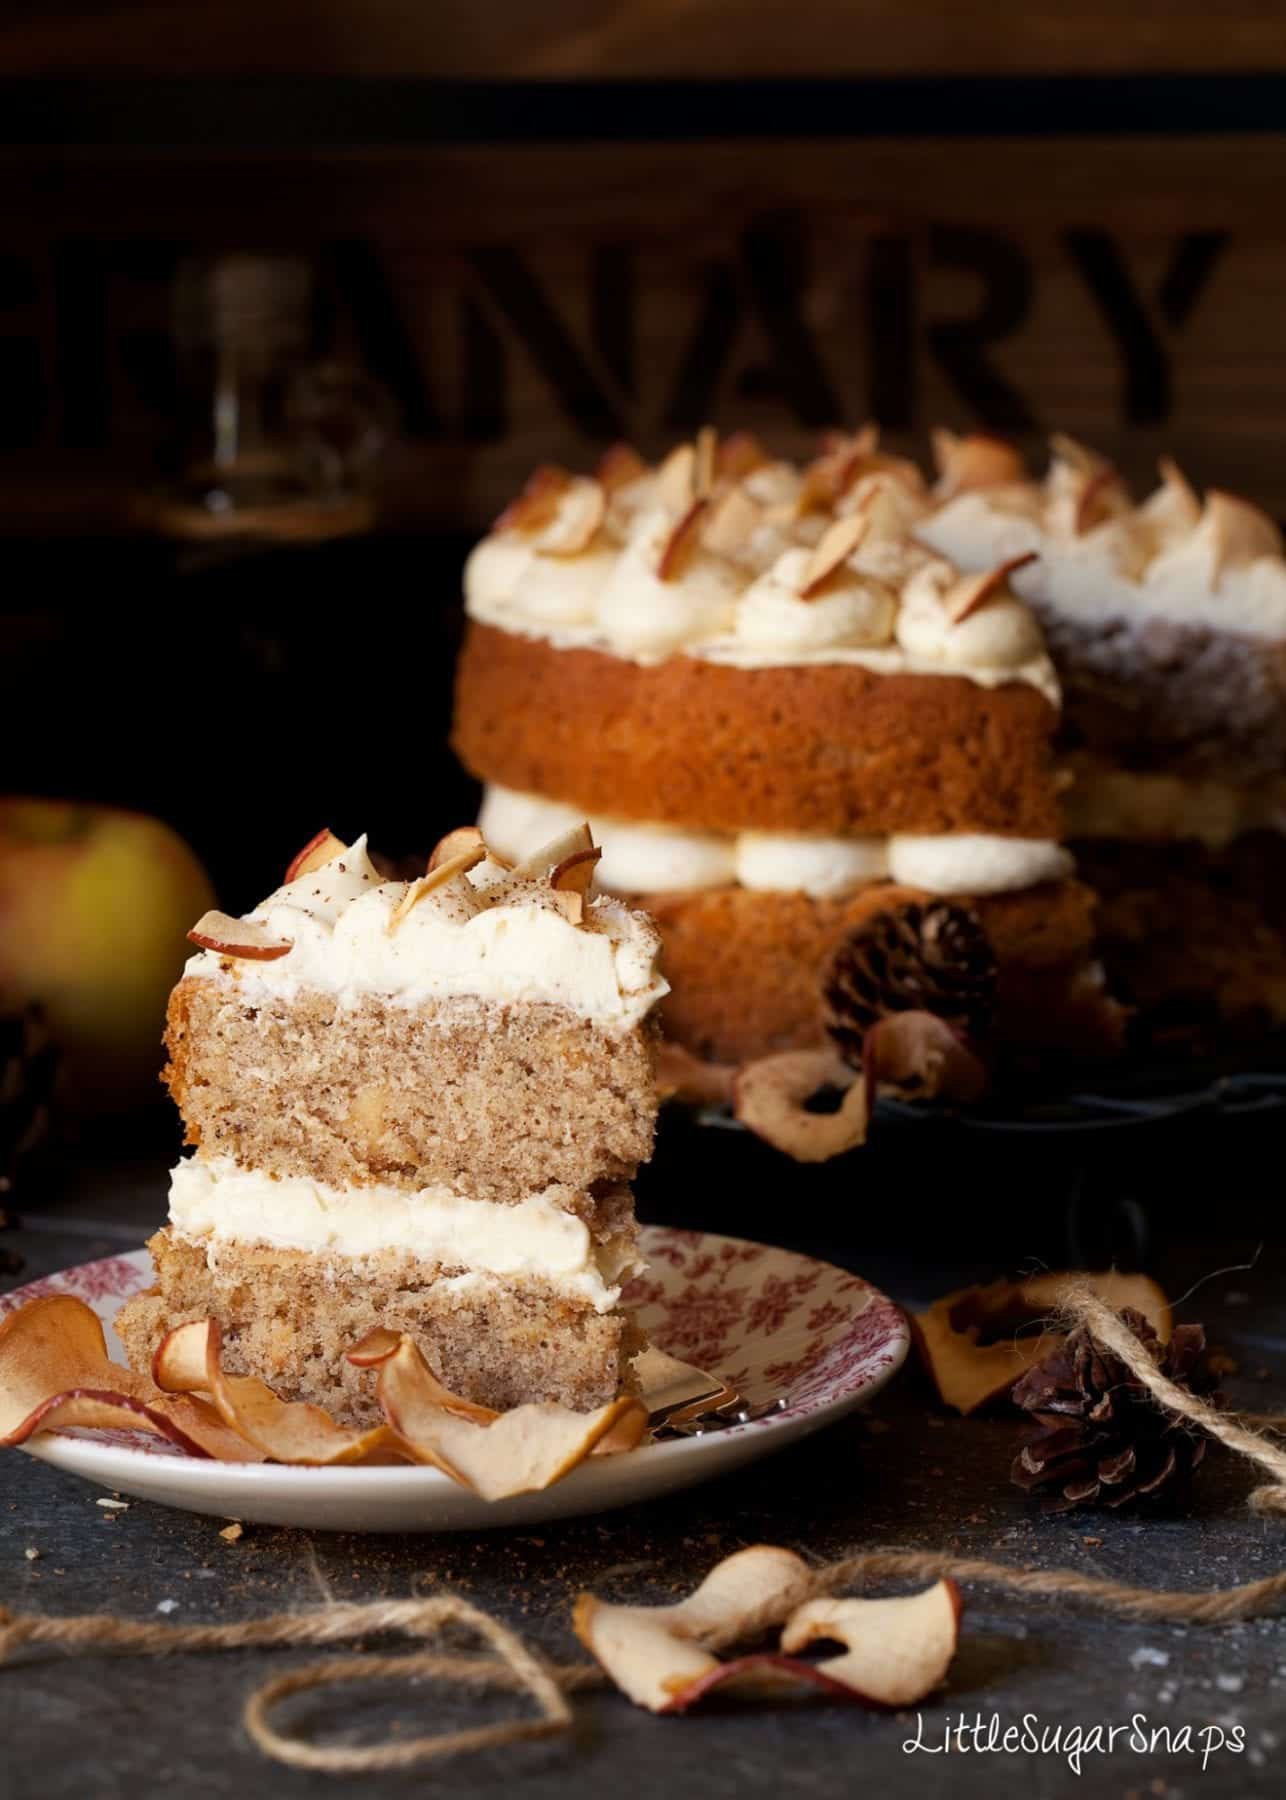 A slice of cinnamon apple cake with maple buttercream on a red side plate.